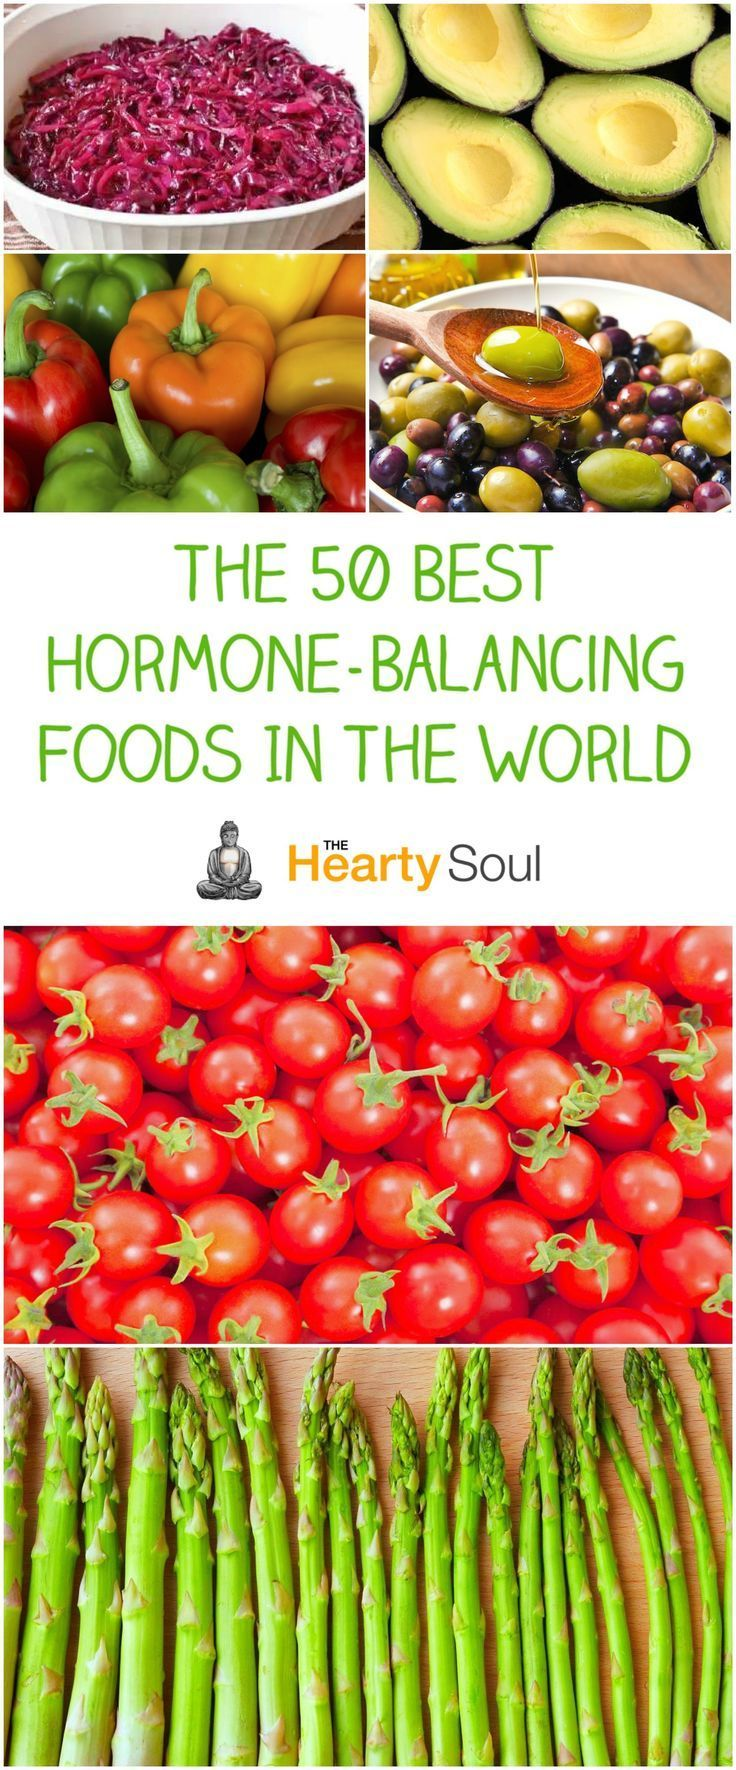 48 foods for balancing hormones and glowing skin foods